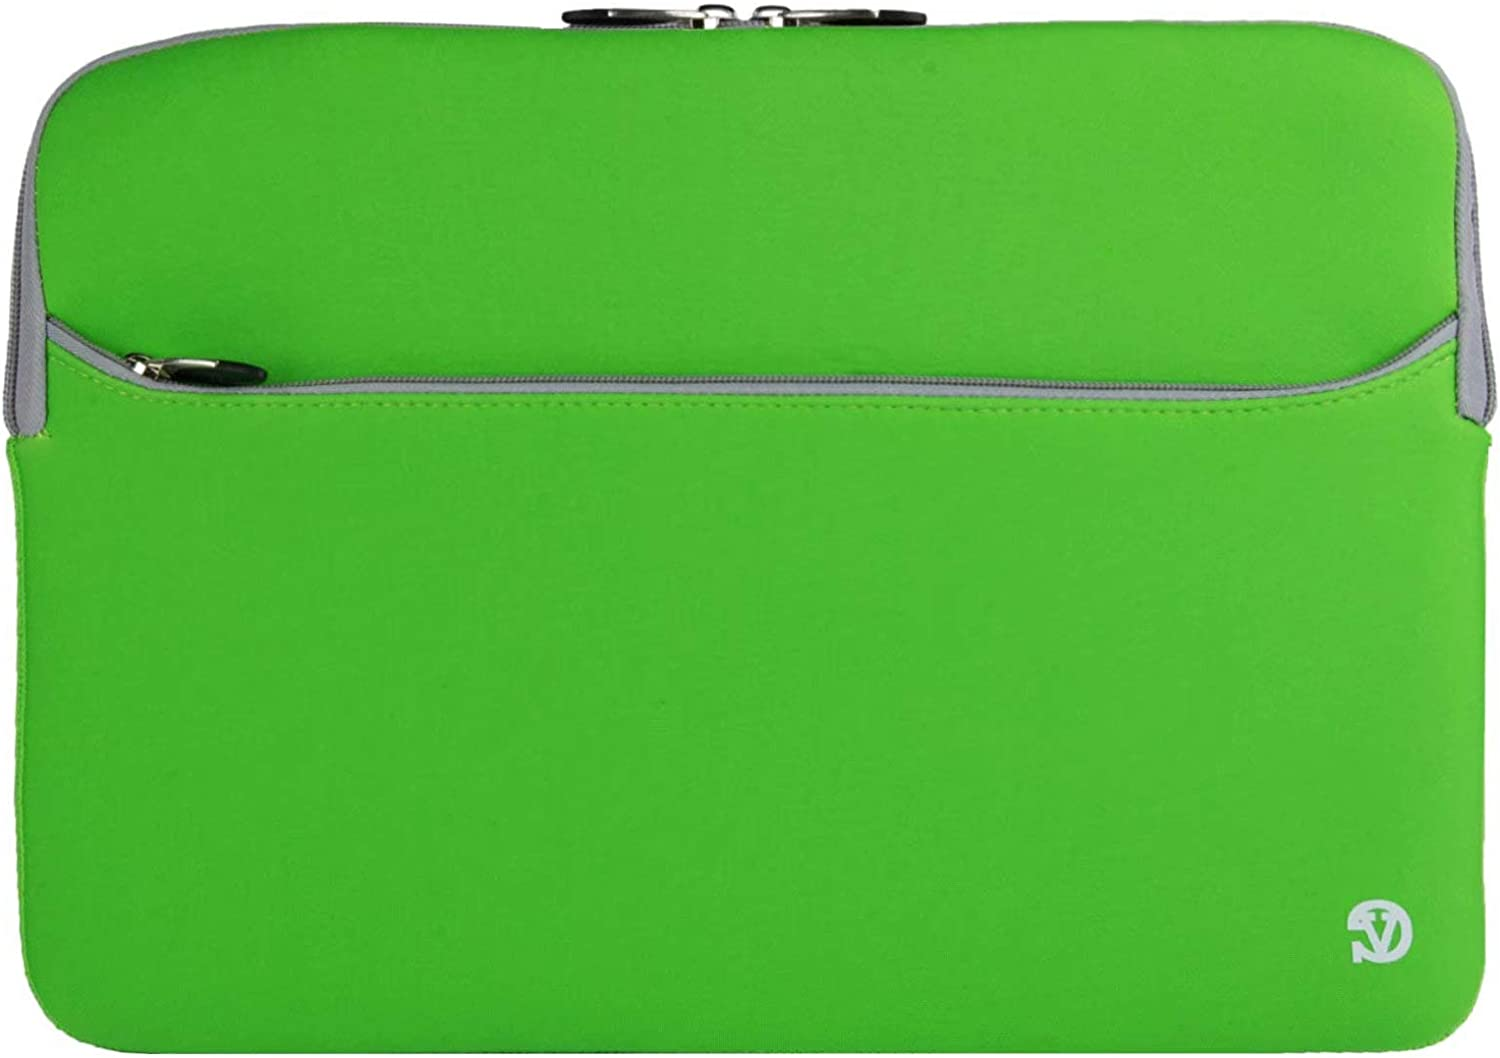 13.3 Inch Laptop Sleeve Bag Fit for Dell Inspiron 13 5390 9391 7375 7386 7390, Latitude 3301 3390 5300 5310 7310 7390, Vostro 13 5570 7390 5391, XPS 13 7390 9300 9365 9370 9380